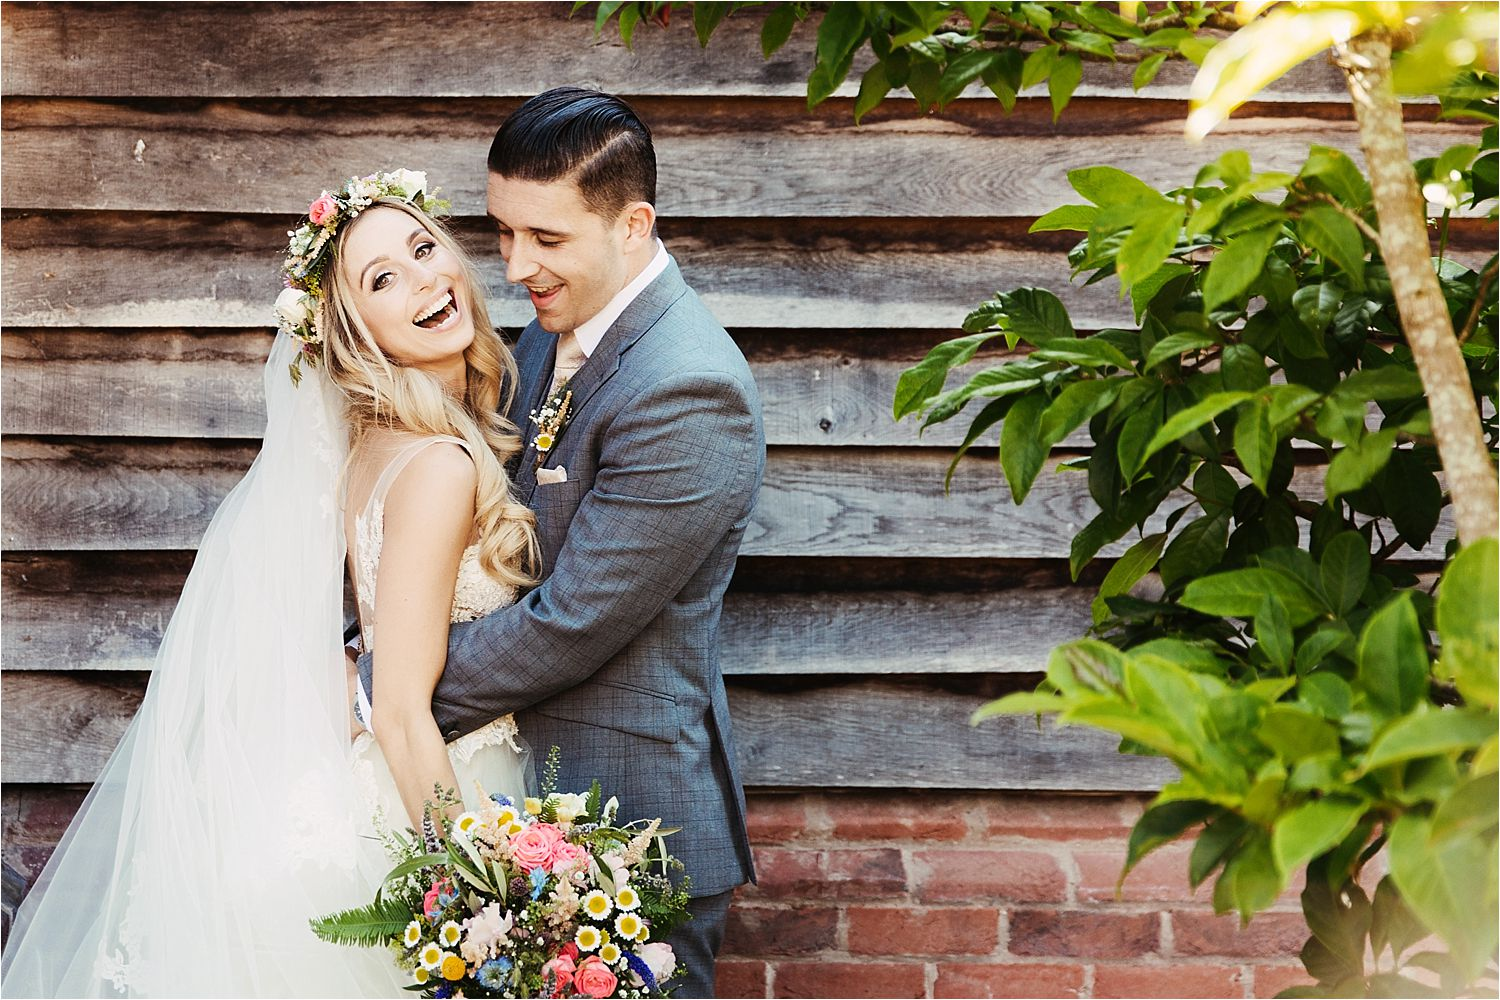 Bride and groom together at Sandhole Oak Barn in Cheshire, flowers by Green Earth Flowers